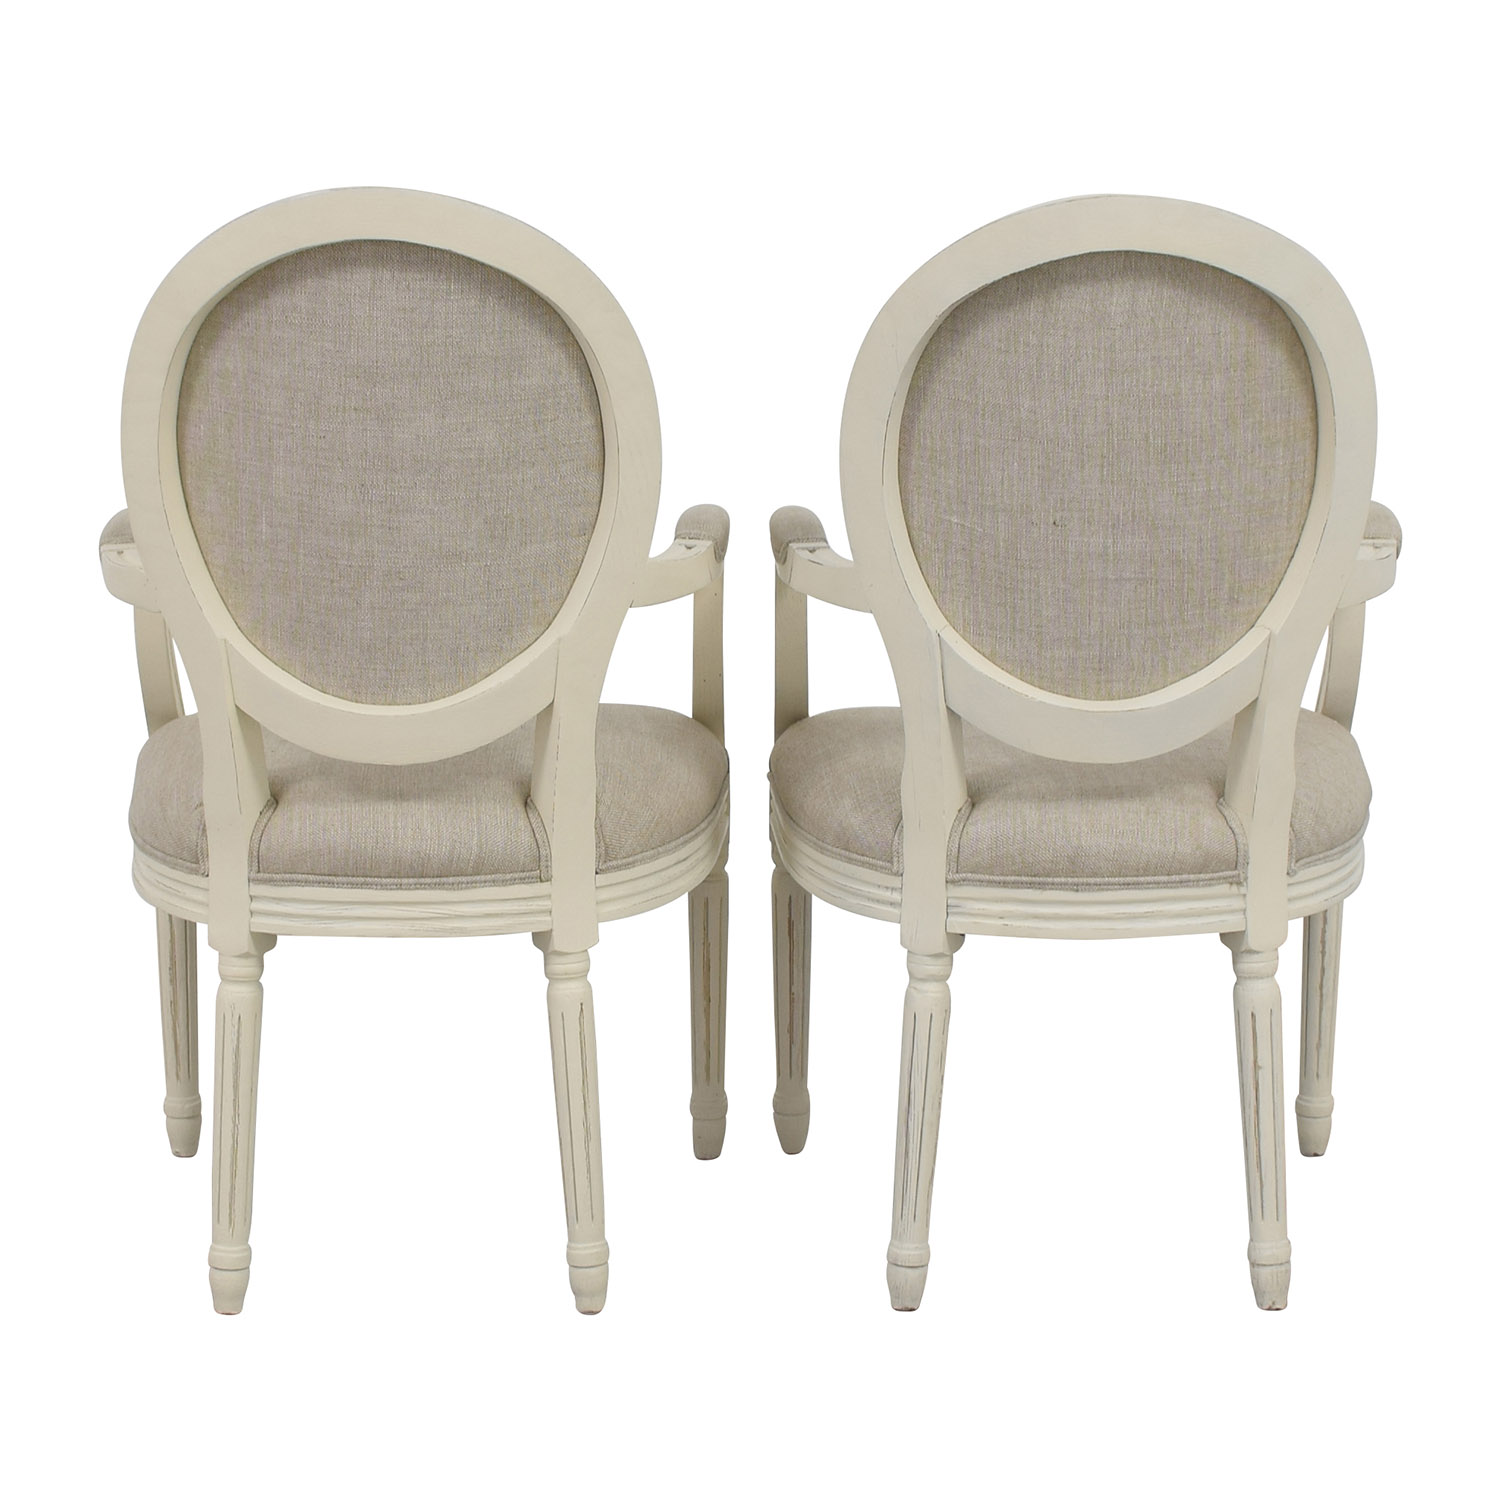 Restoration Hardware Restoration Hardware Beige French Chairs for sale